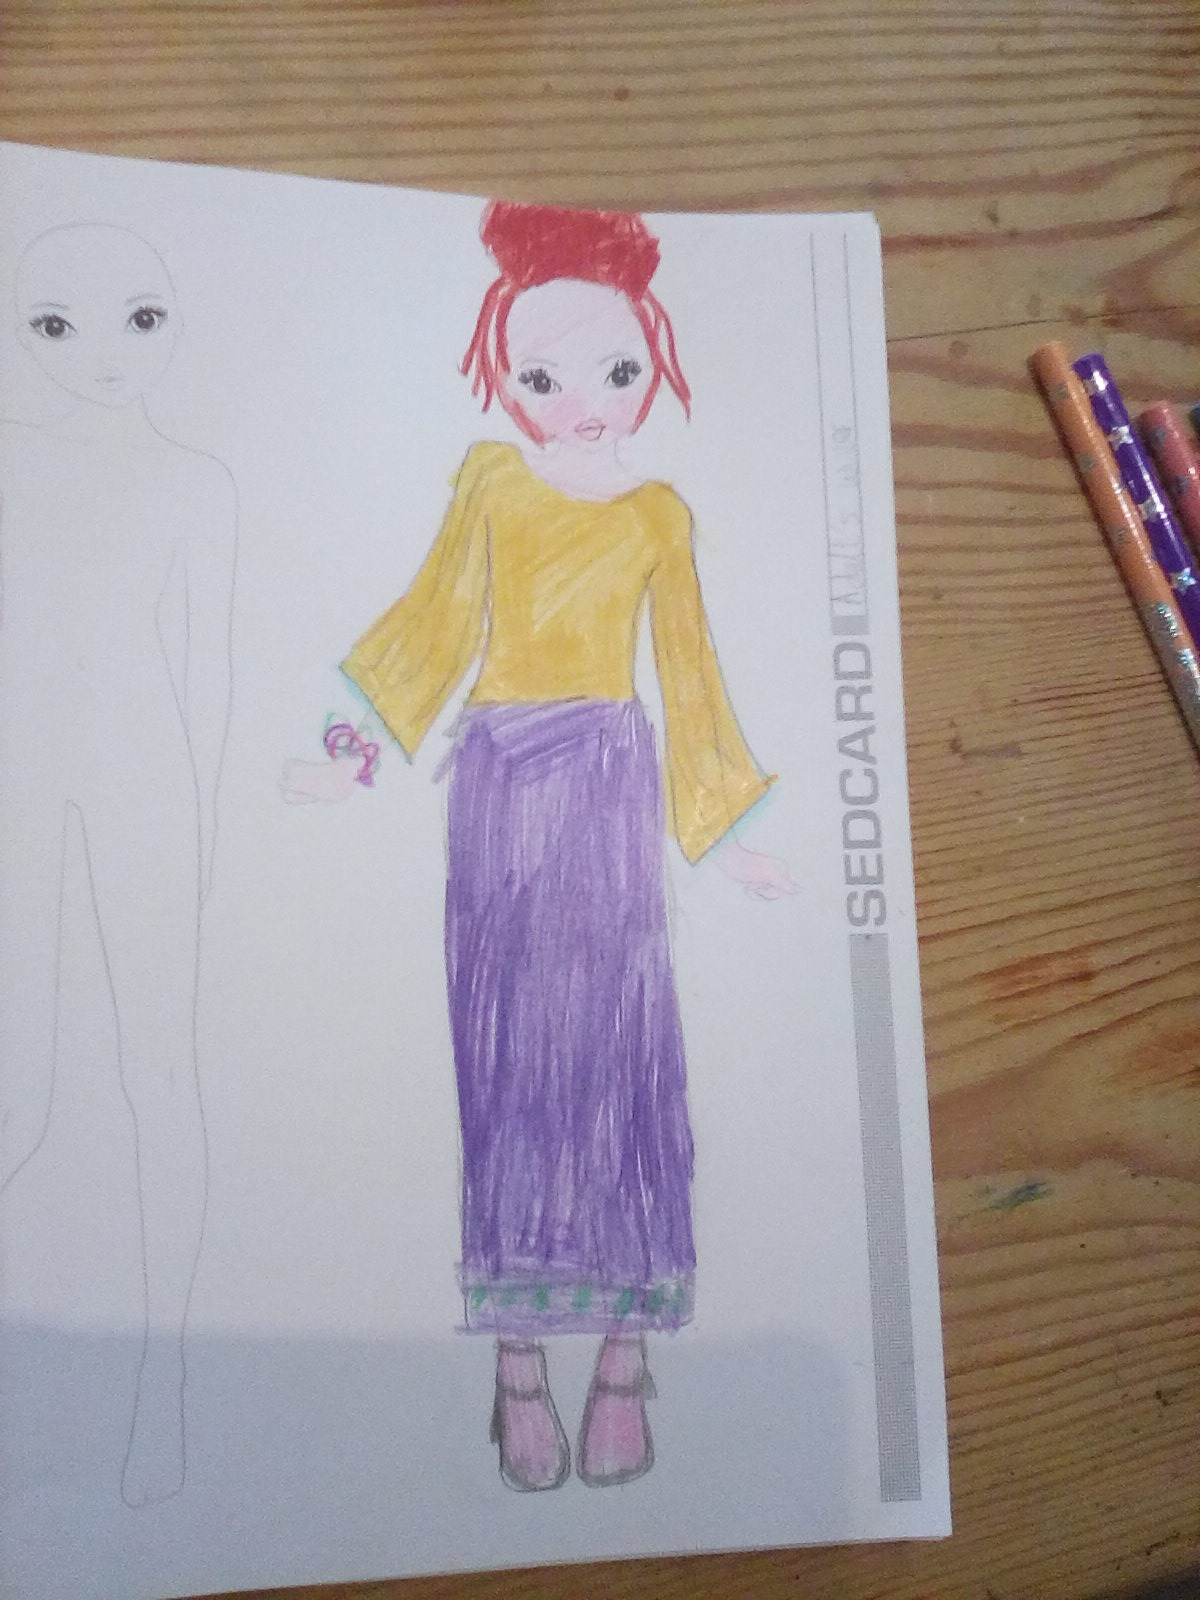 Maria R., 9years, from Derby